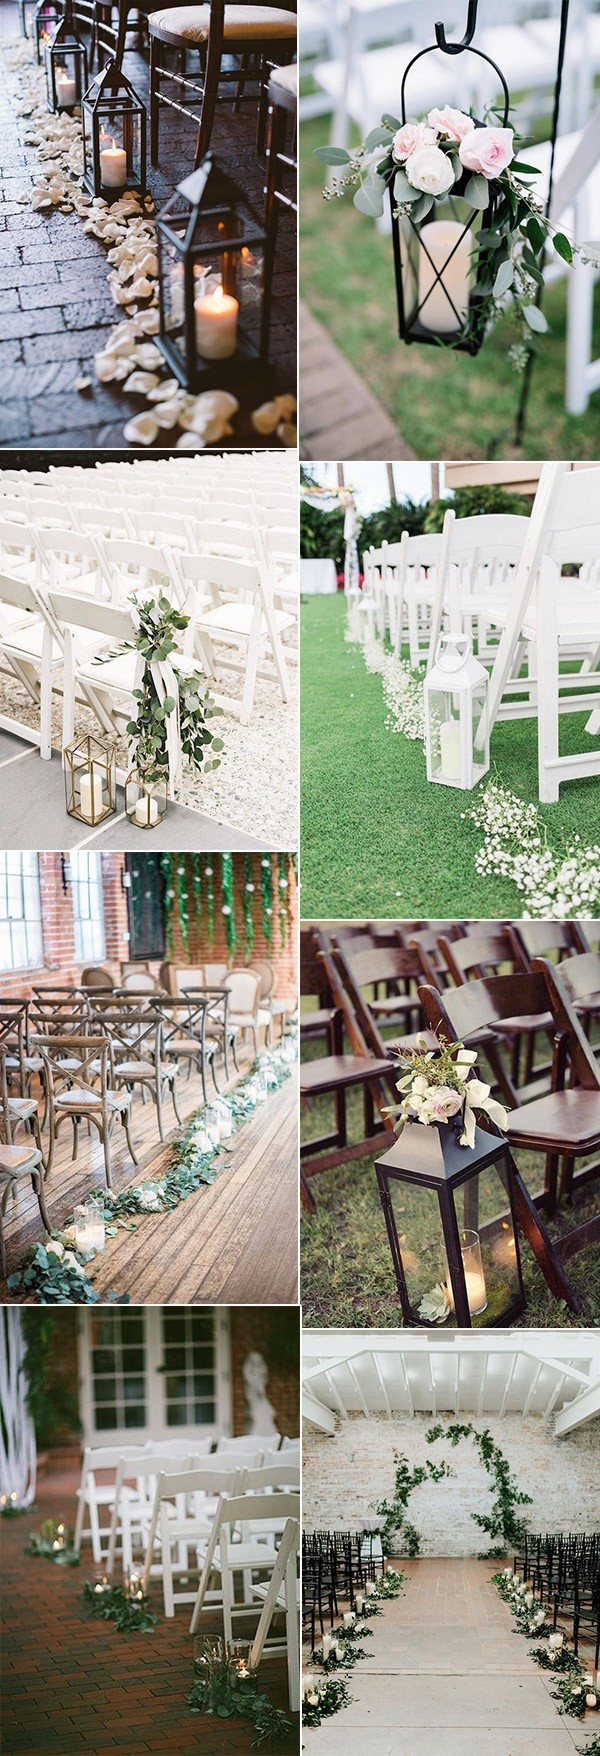 wedding ceremony aisle decoration ideas with lanterns and candles